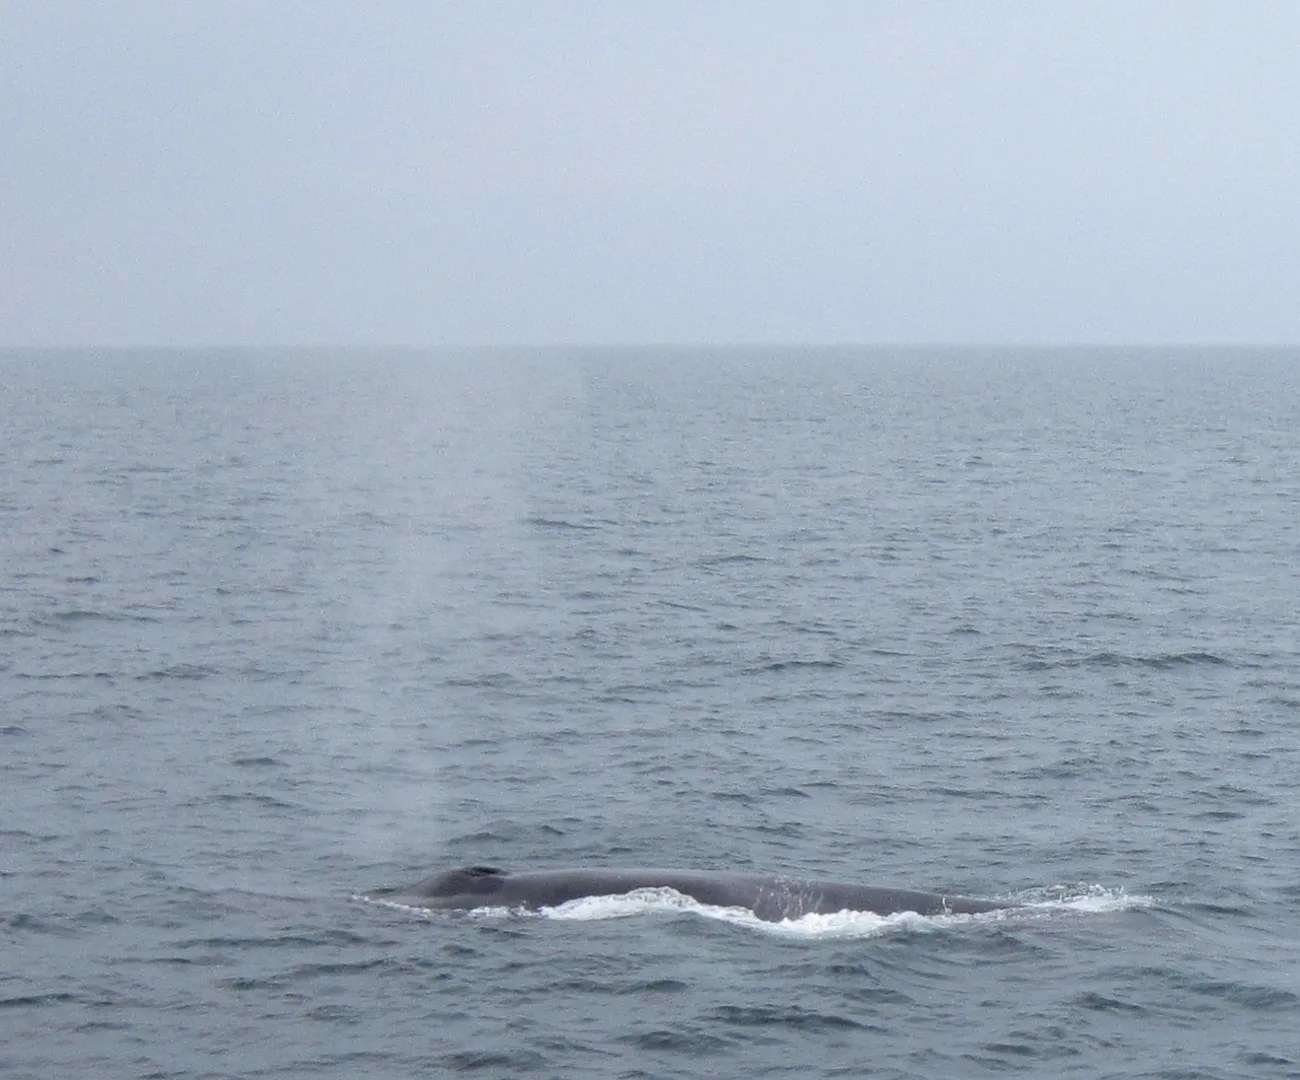 whale blowhole spray, Cape Cod